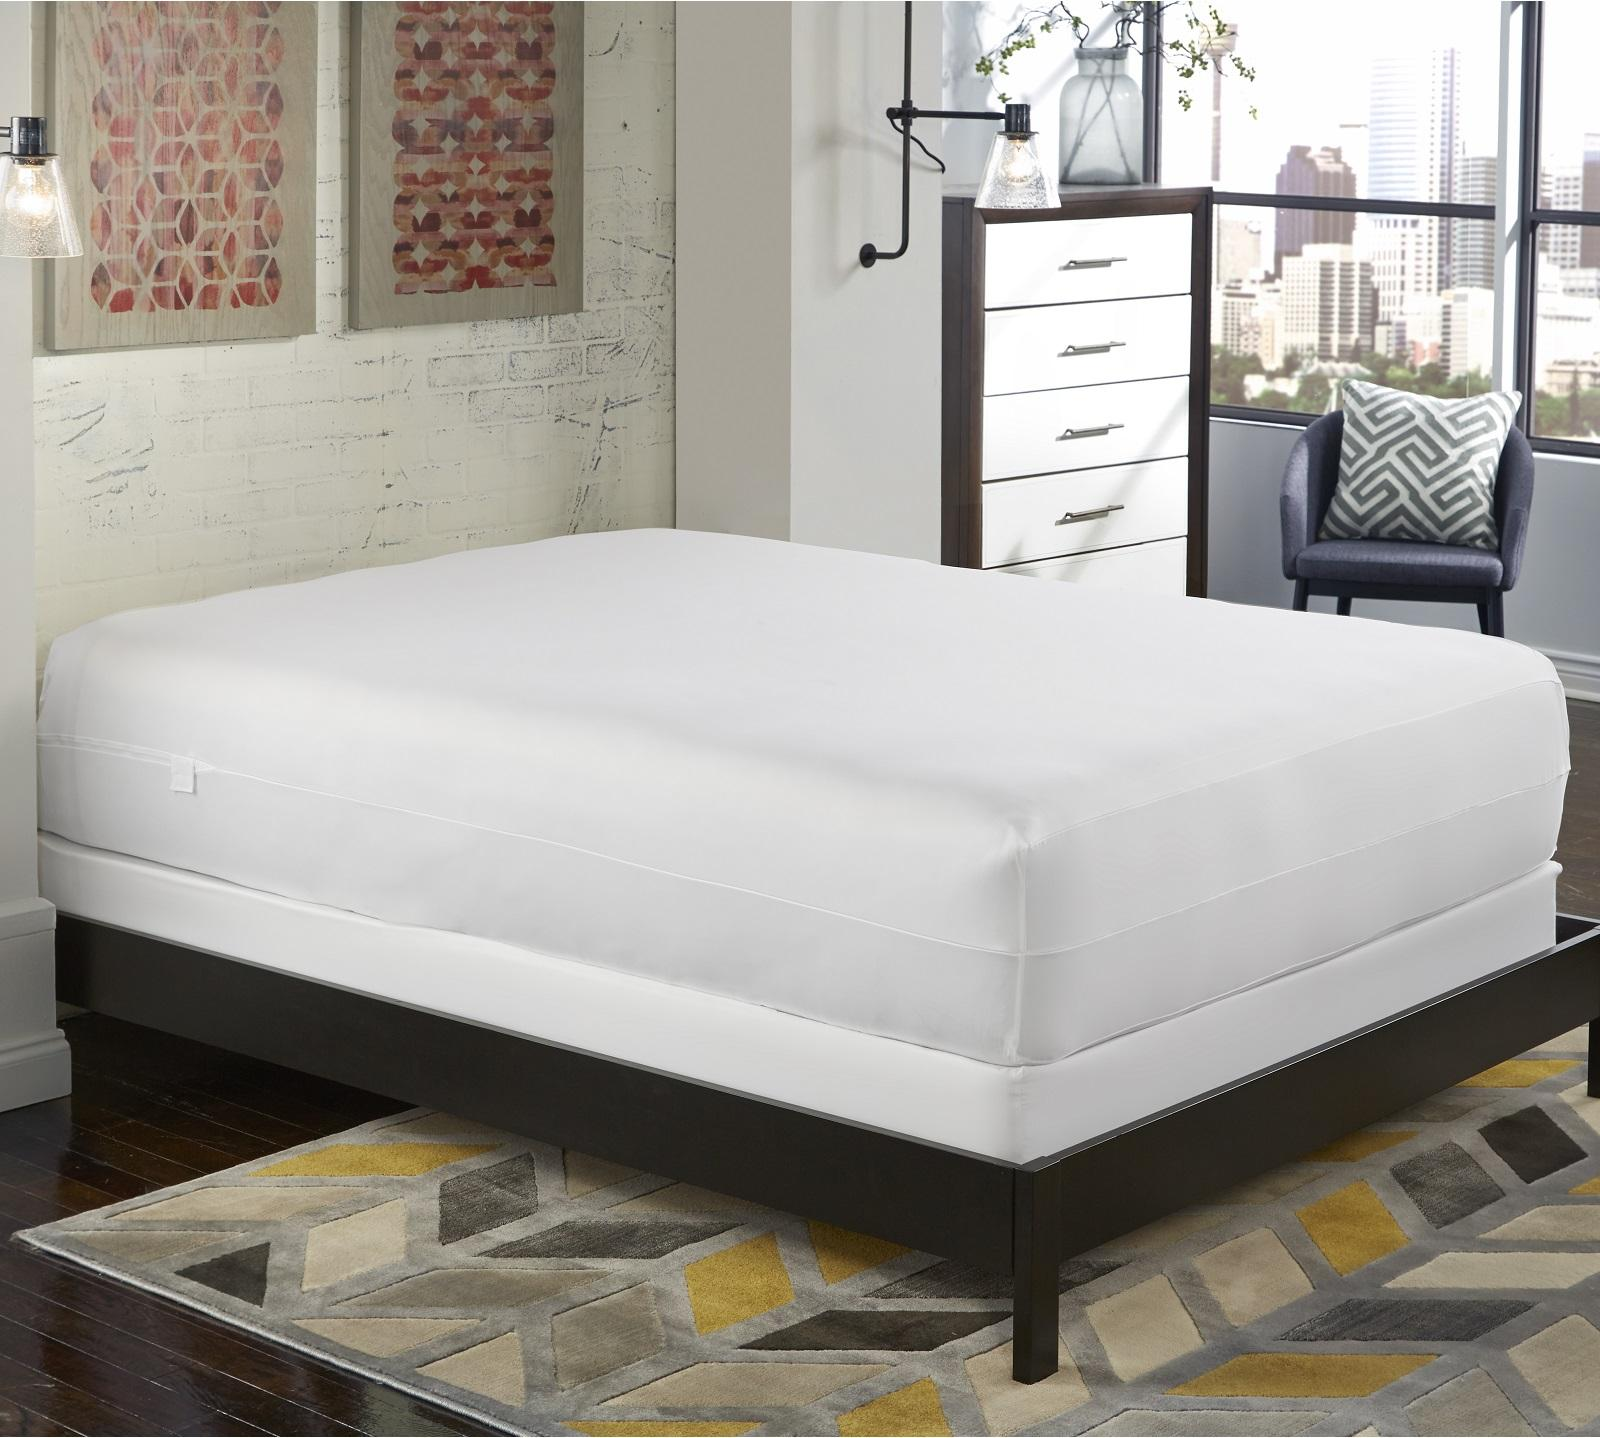 hills clearance mattress of best near the bath center tulsa bed me and firm pictures